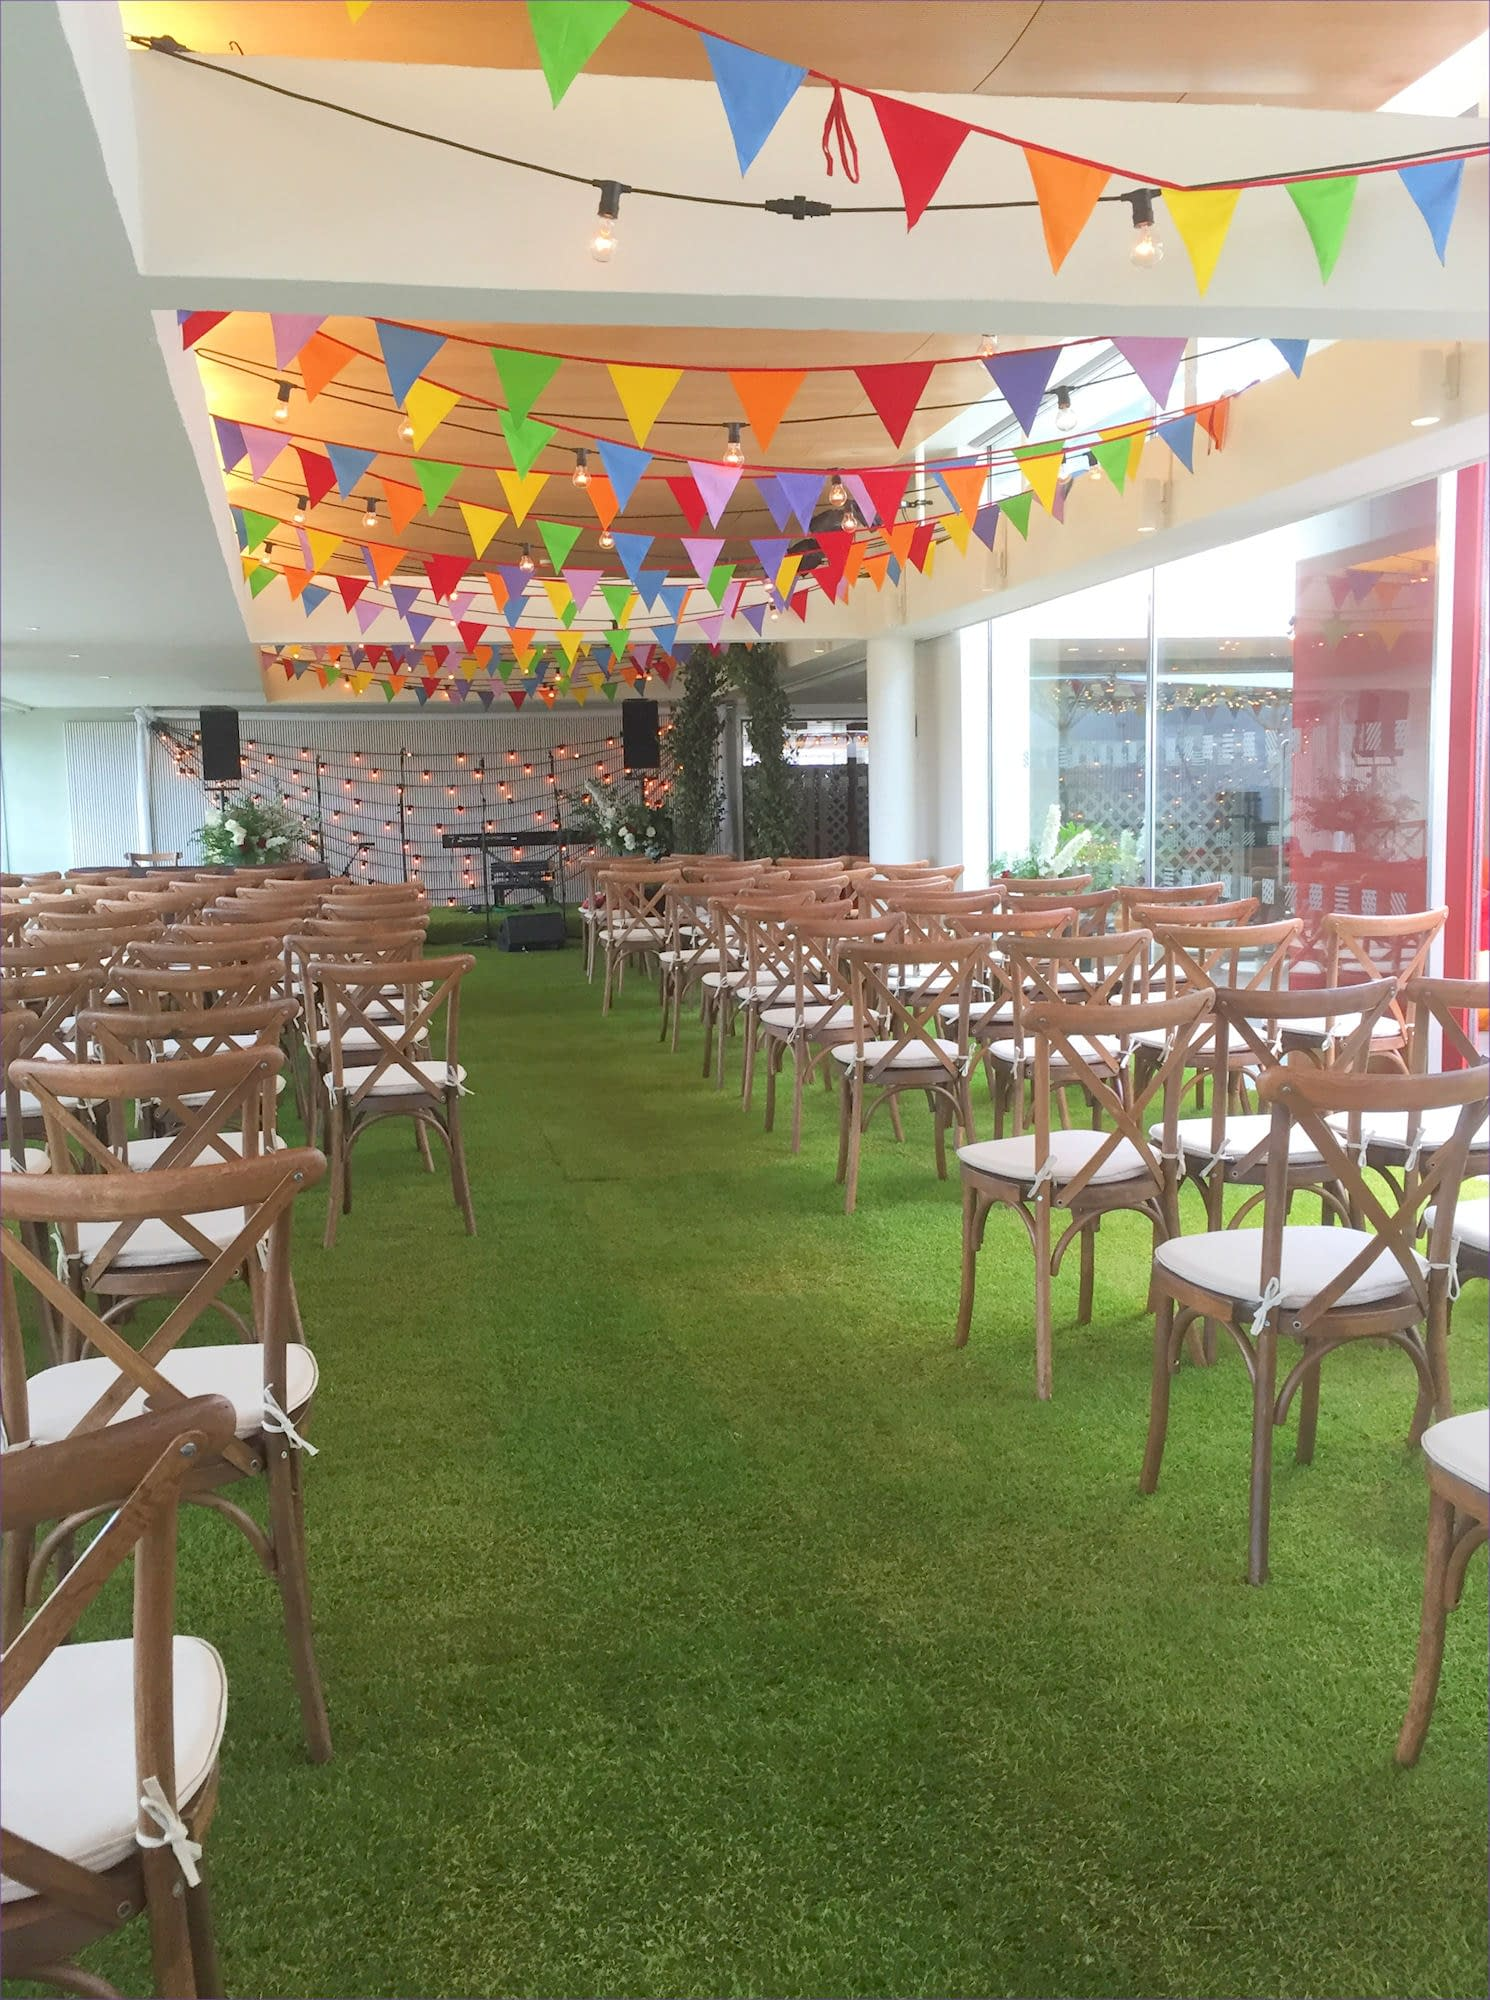 Festival themed wedding with colourful bunting, real grass and festoon lighting and rustic furniture at The Royal Festival Hall, London event venue